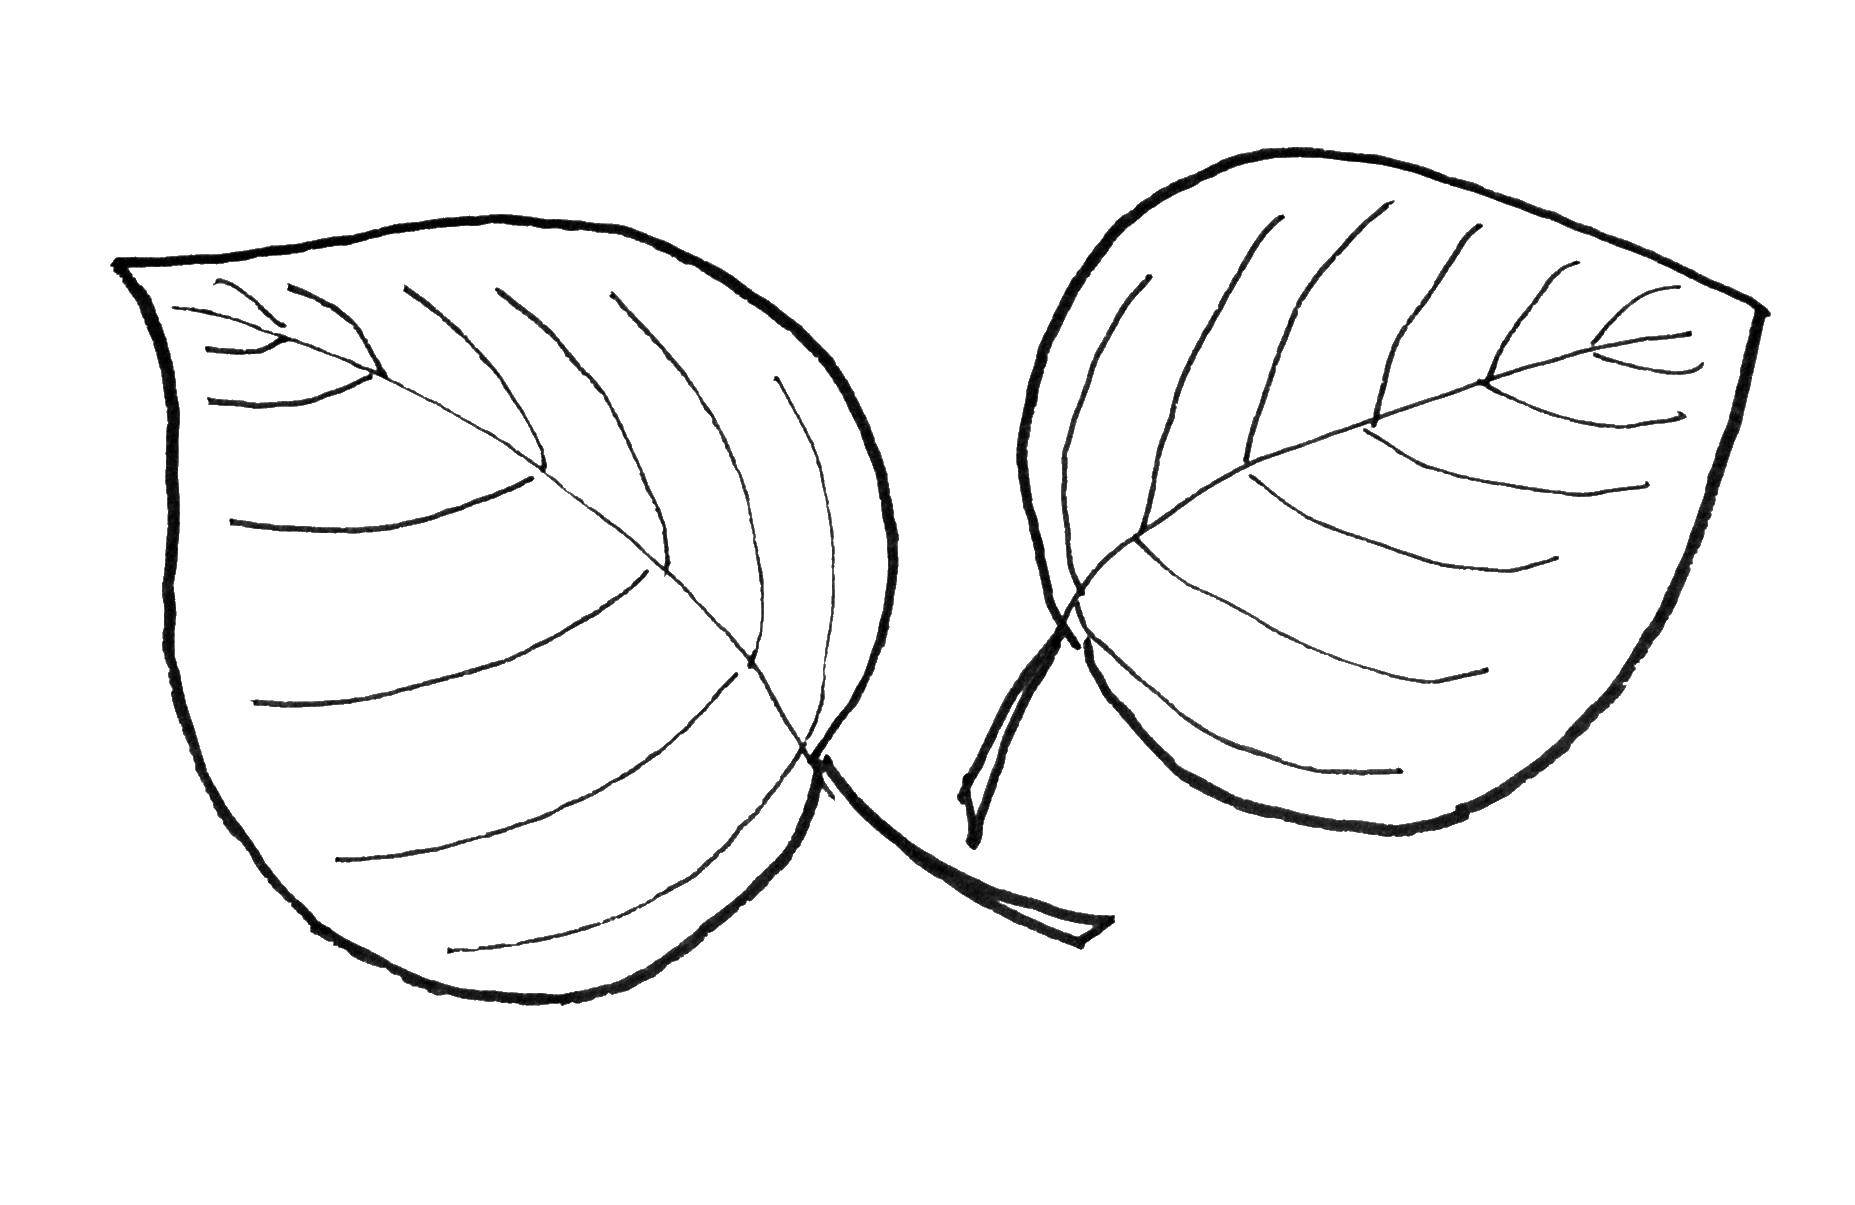 Coloring sheet The contours of the leaves of the trees Download .  Print